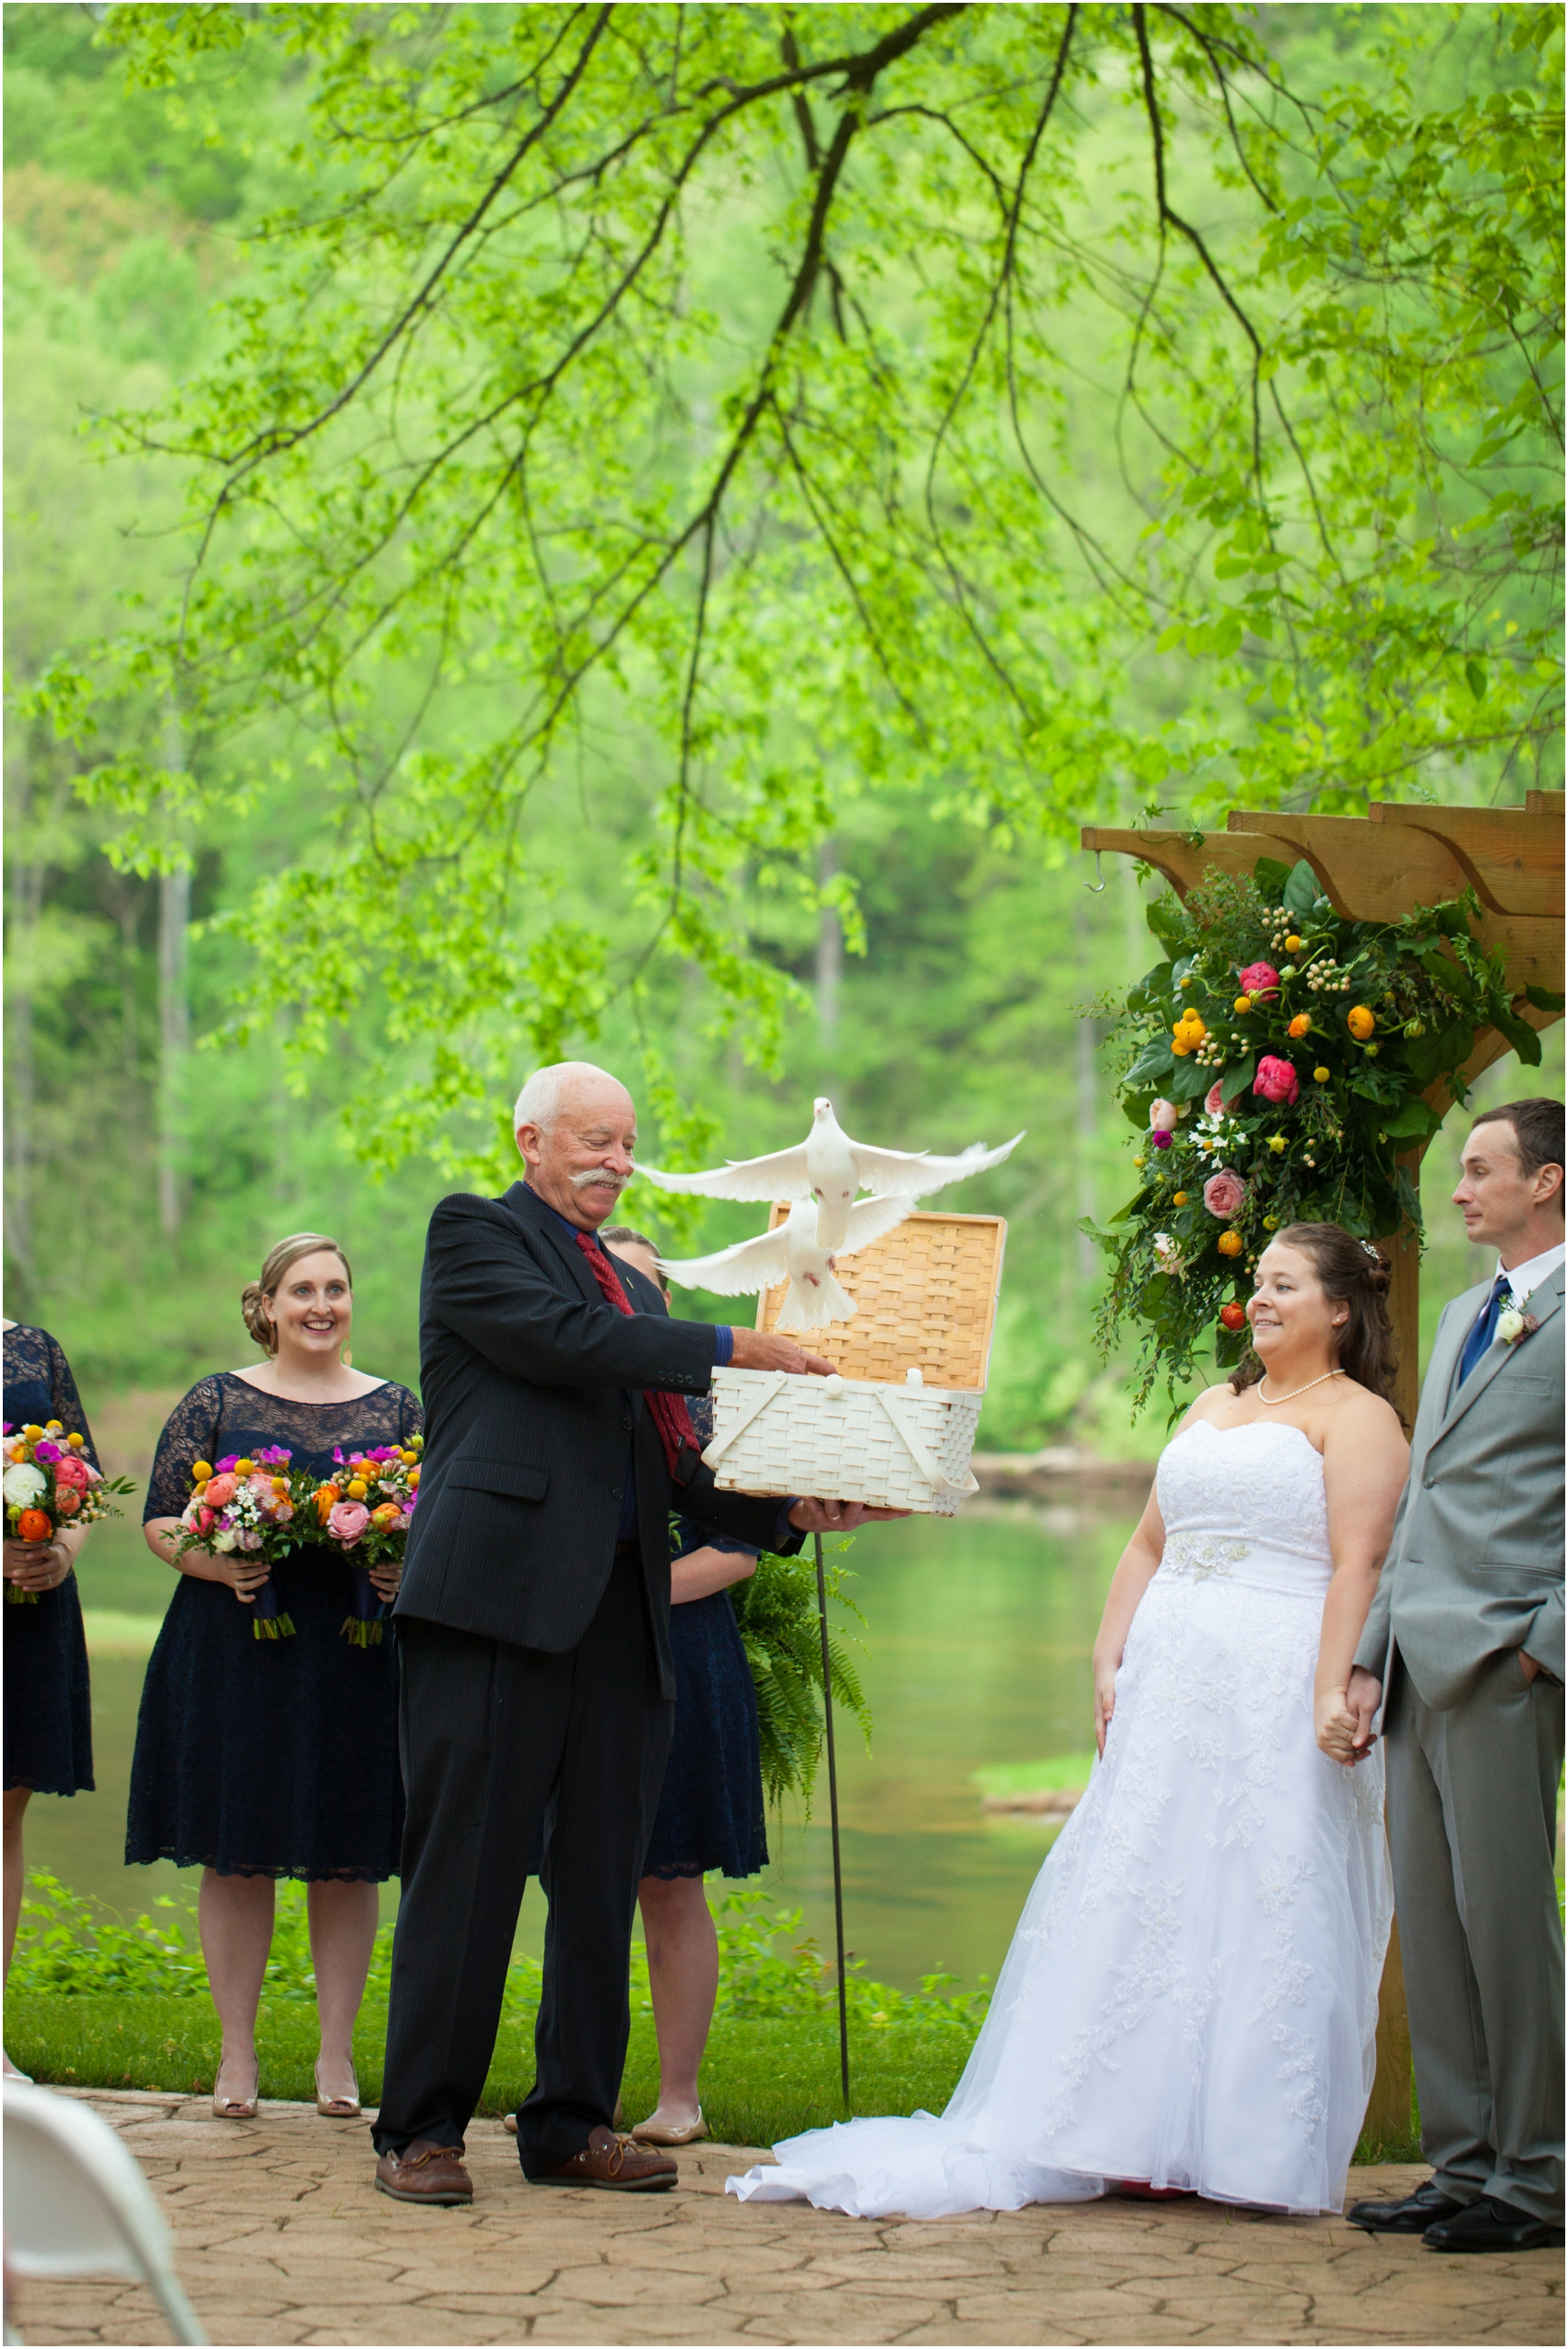 Outdoor_Central_Virginia_Clores_Bros_Summer_Wedding_Fredericksburg_VA_0020.jpg